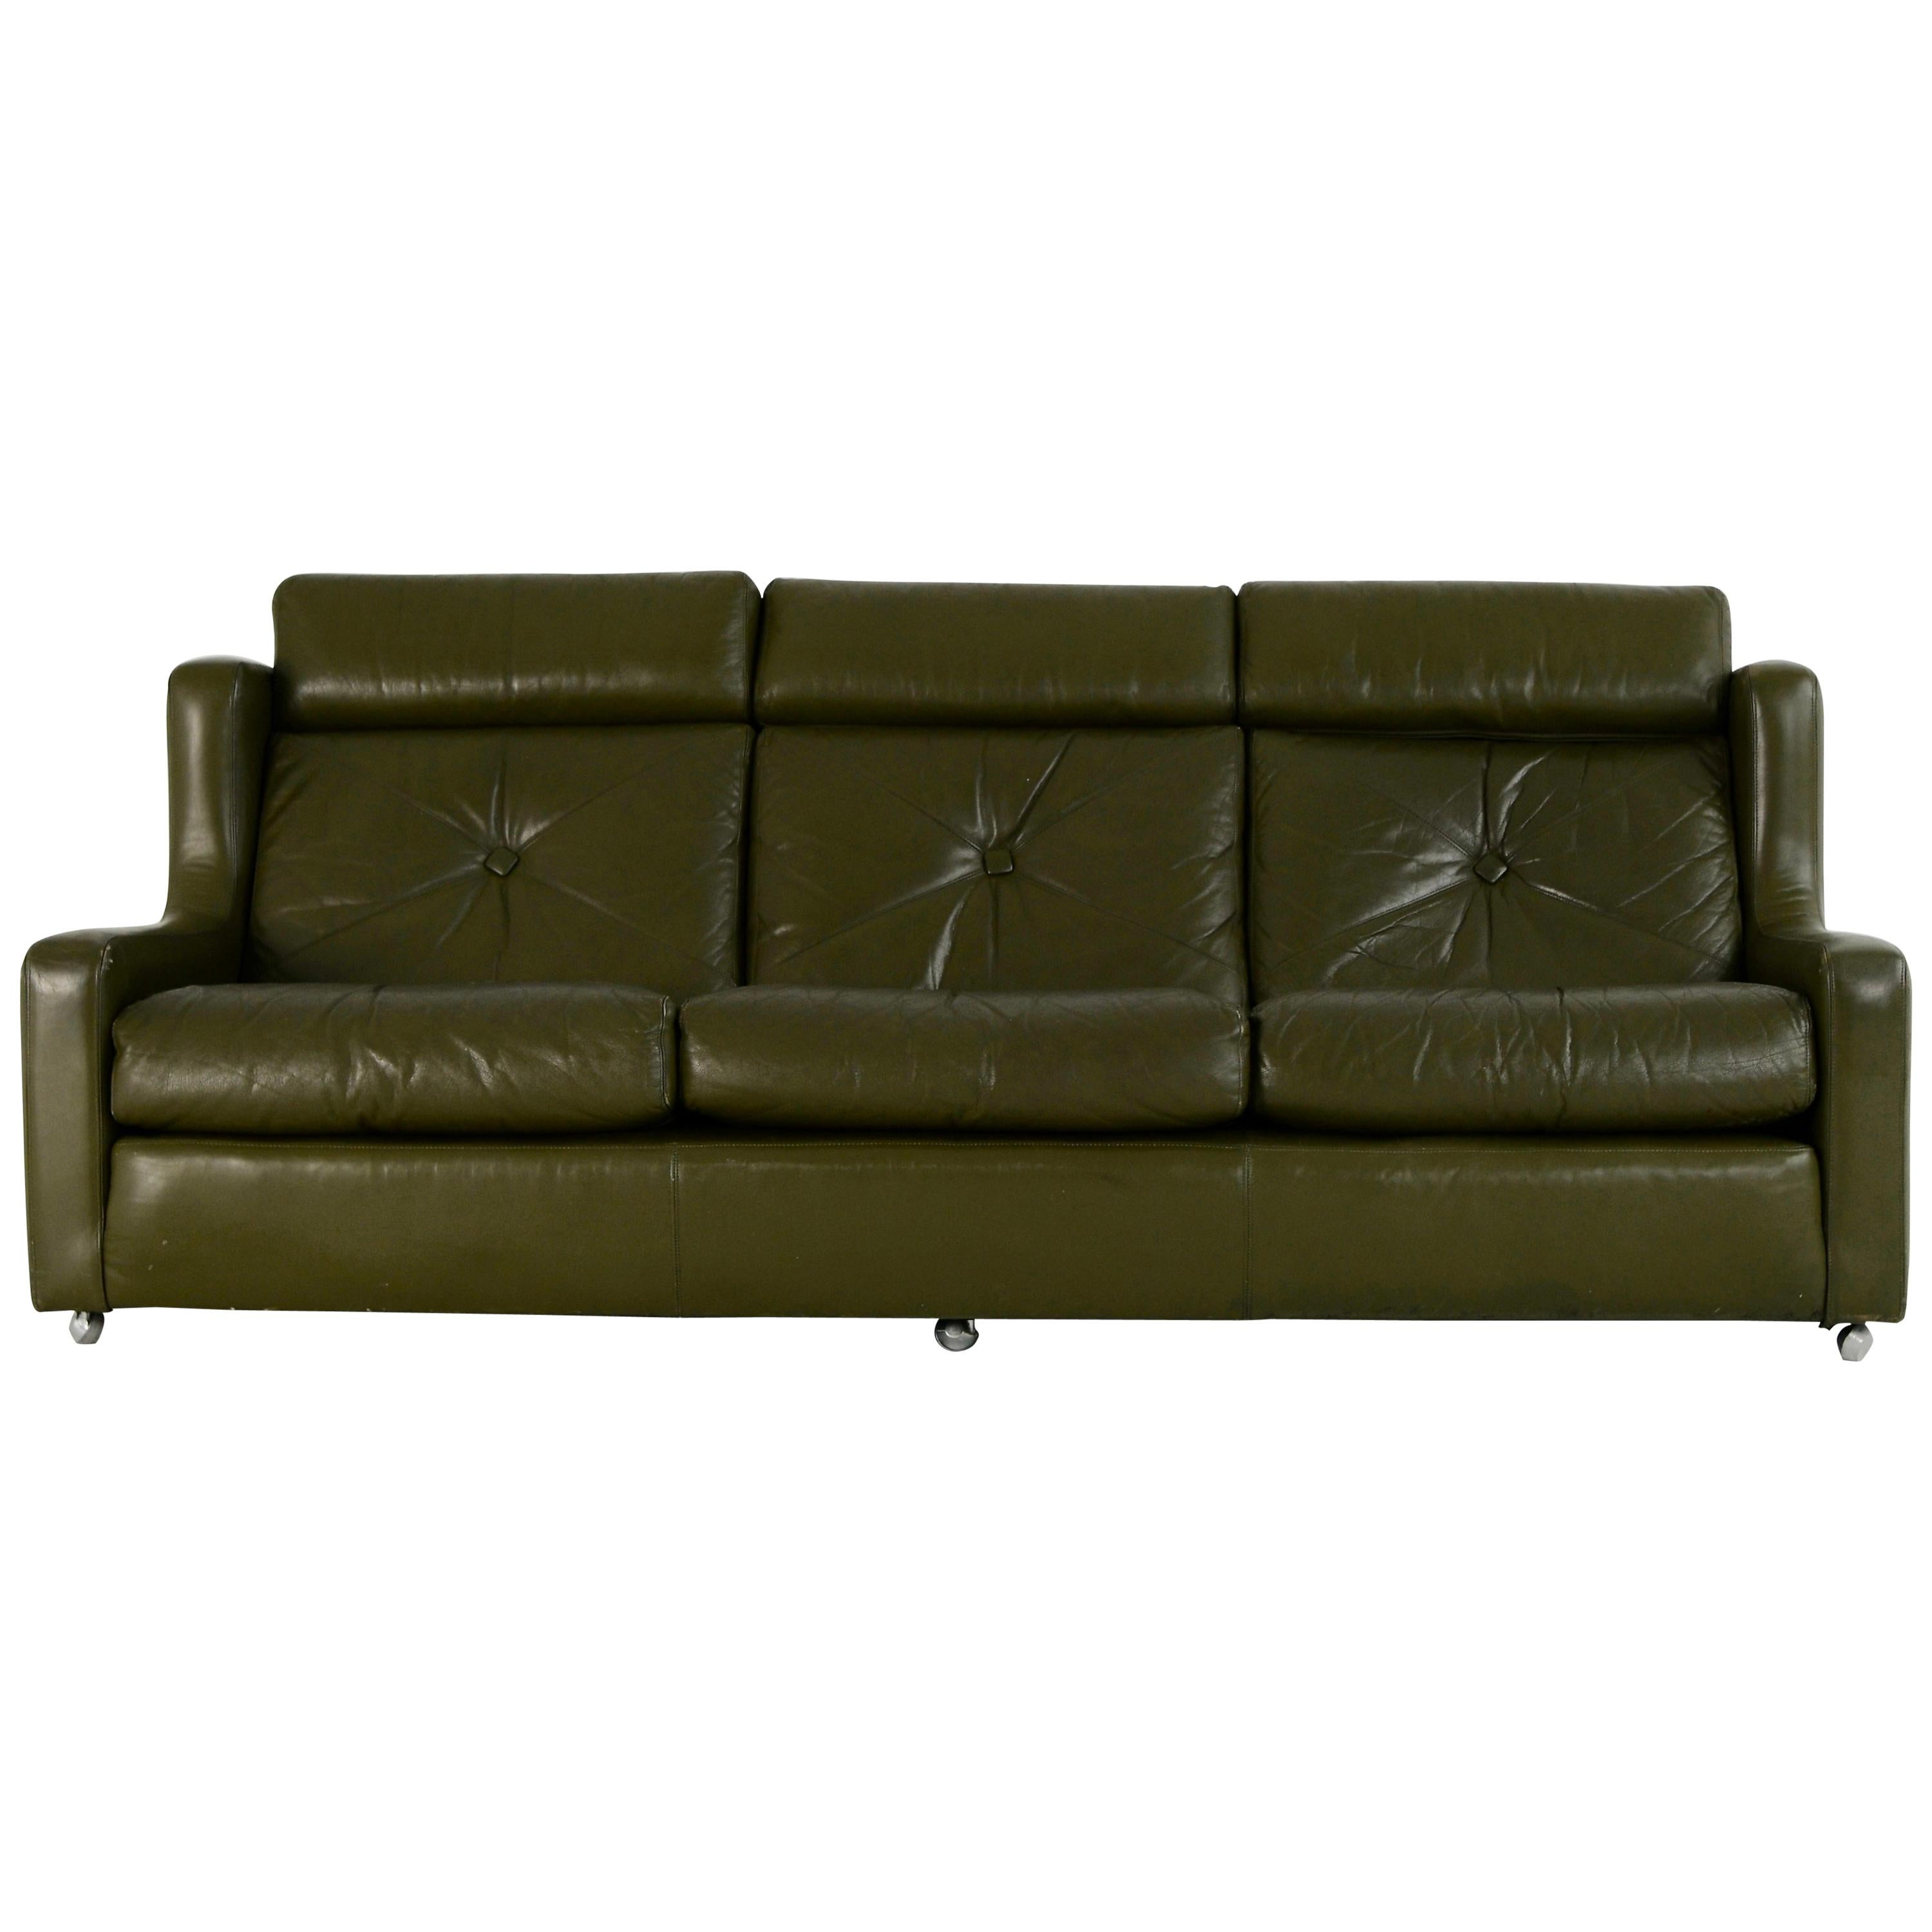 Green Leather Sofas - 109 For Sale on 1stdibs